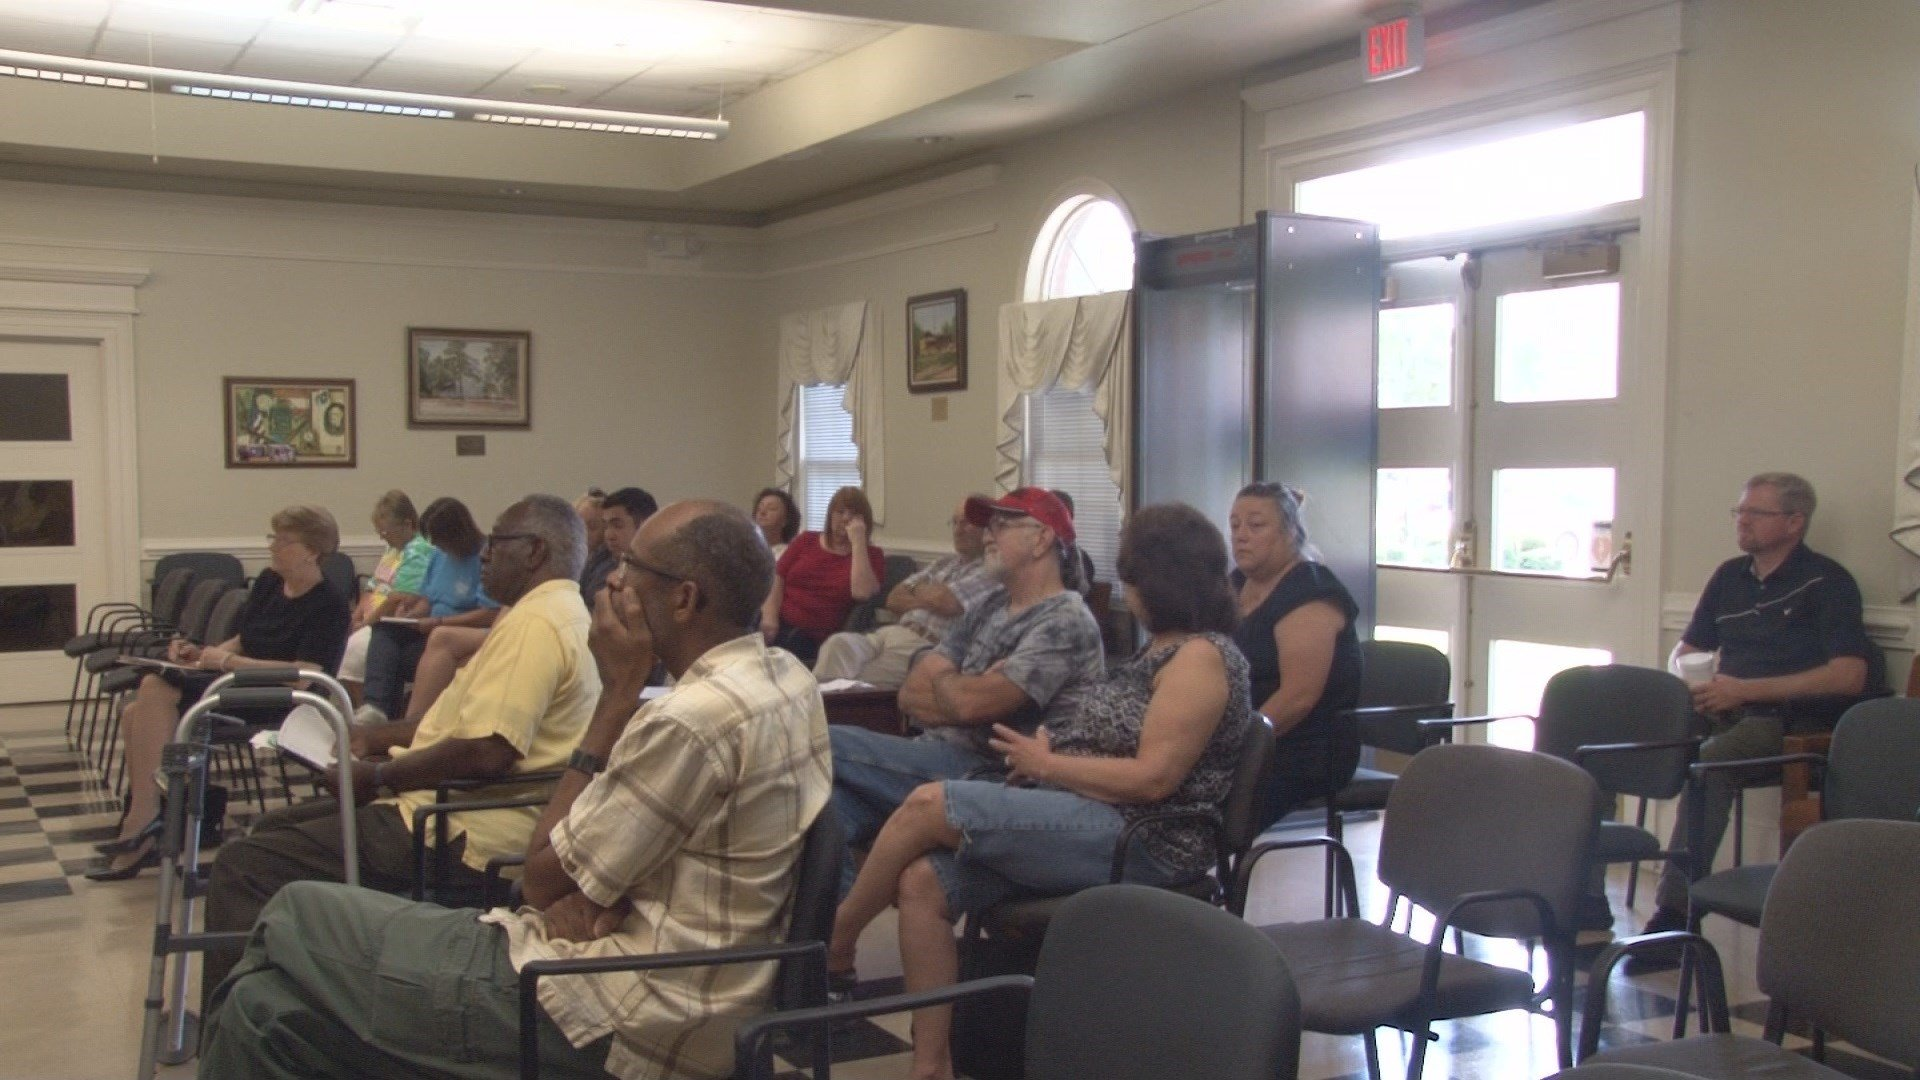 HEATED DISCUSSION ON PROPOSED MILLAGE HIKE wfxg